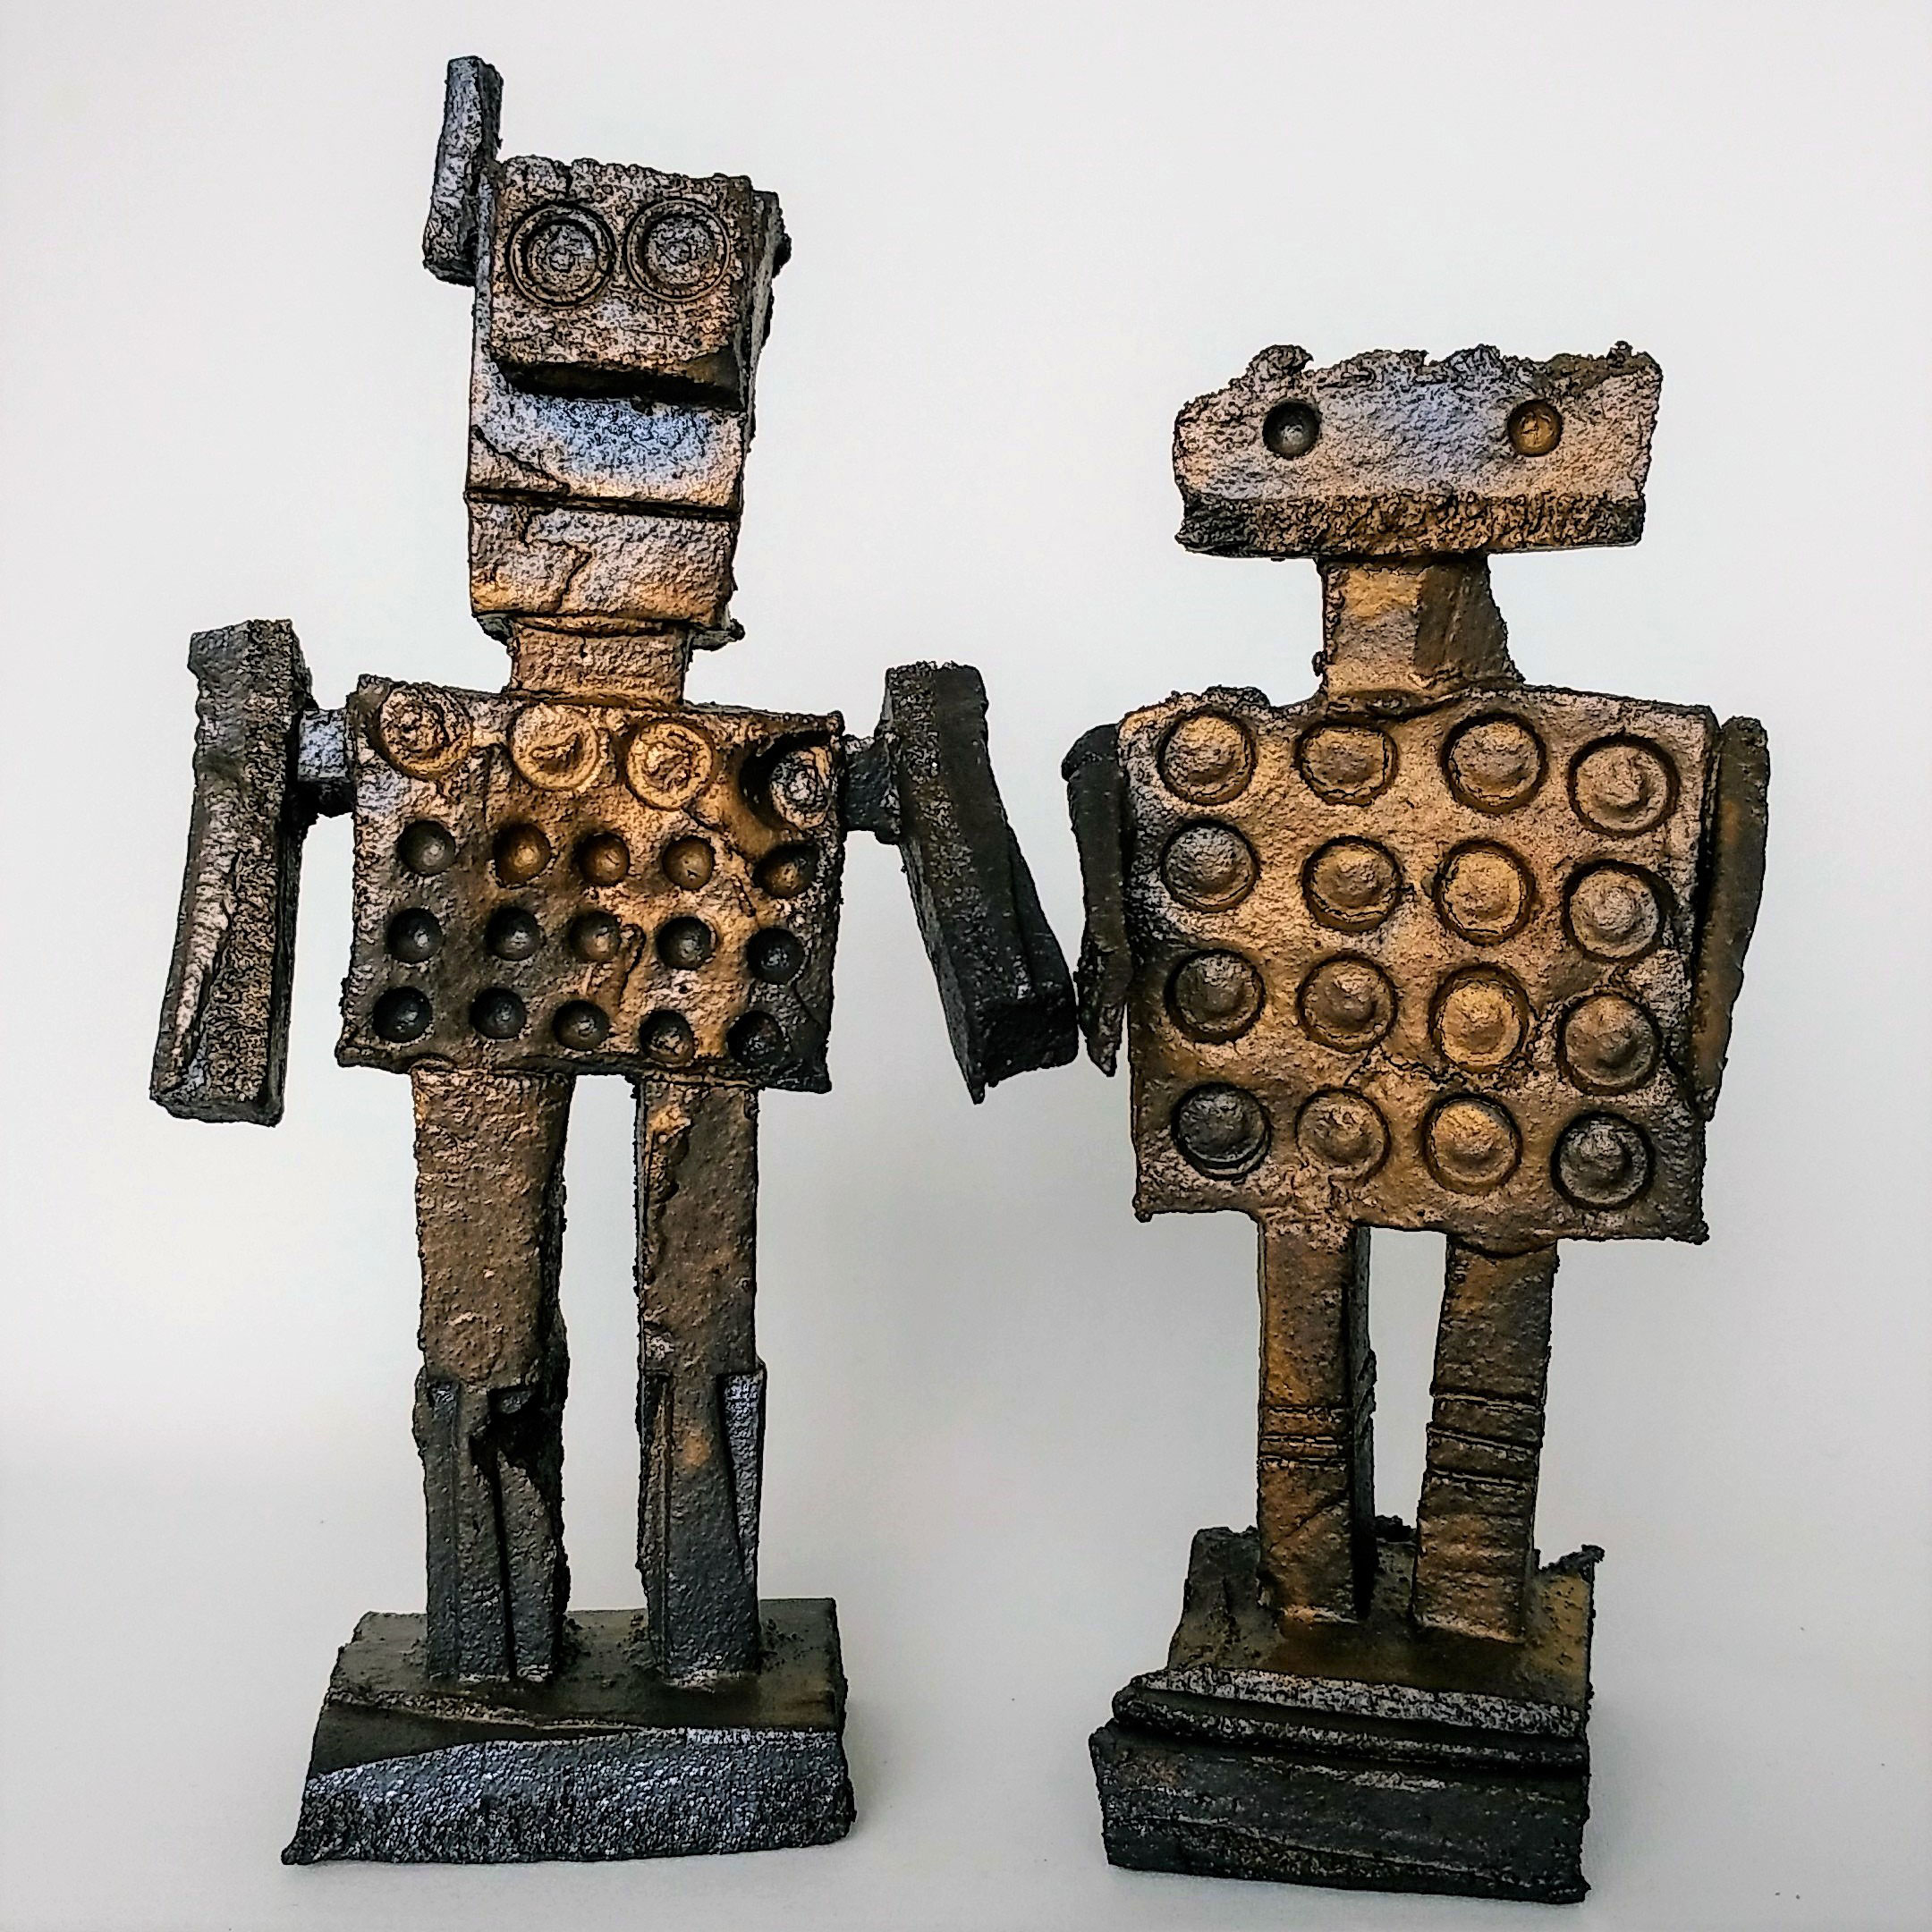 """Rough Robots   Mark Clough and Warren Dunn are art teachers near Manchester, Mark now retired. In addition to producing digital drawings, Mark and Warren got together to design rough robots, initially from cardboard, beachcombings and streetfinds, now from clay. What is universal across all their media is the recycling and incorporation into their images materials that have been jettisoned from a previous use. Robots are """"a modern archetypal form that can withstand all sorts of liberties of interpretation, but which can still be recognised."""" Among there influences they speak of """"the Japanese notion of flawed beauty ('wabi sabi'), the Golem legend, brutalism, industrial plant, tanks, aeroplanes, armour and Ned Kelly."""""""